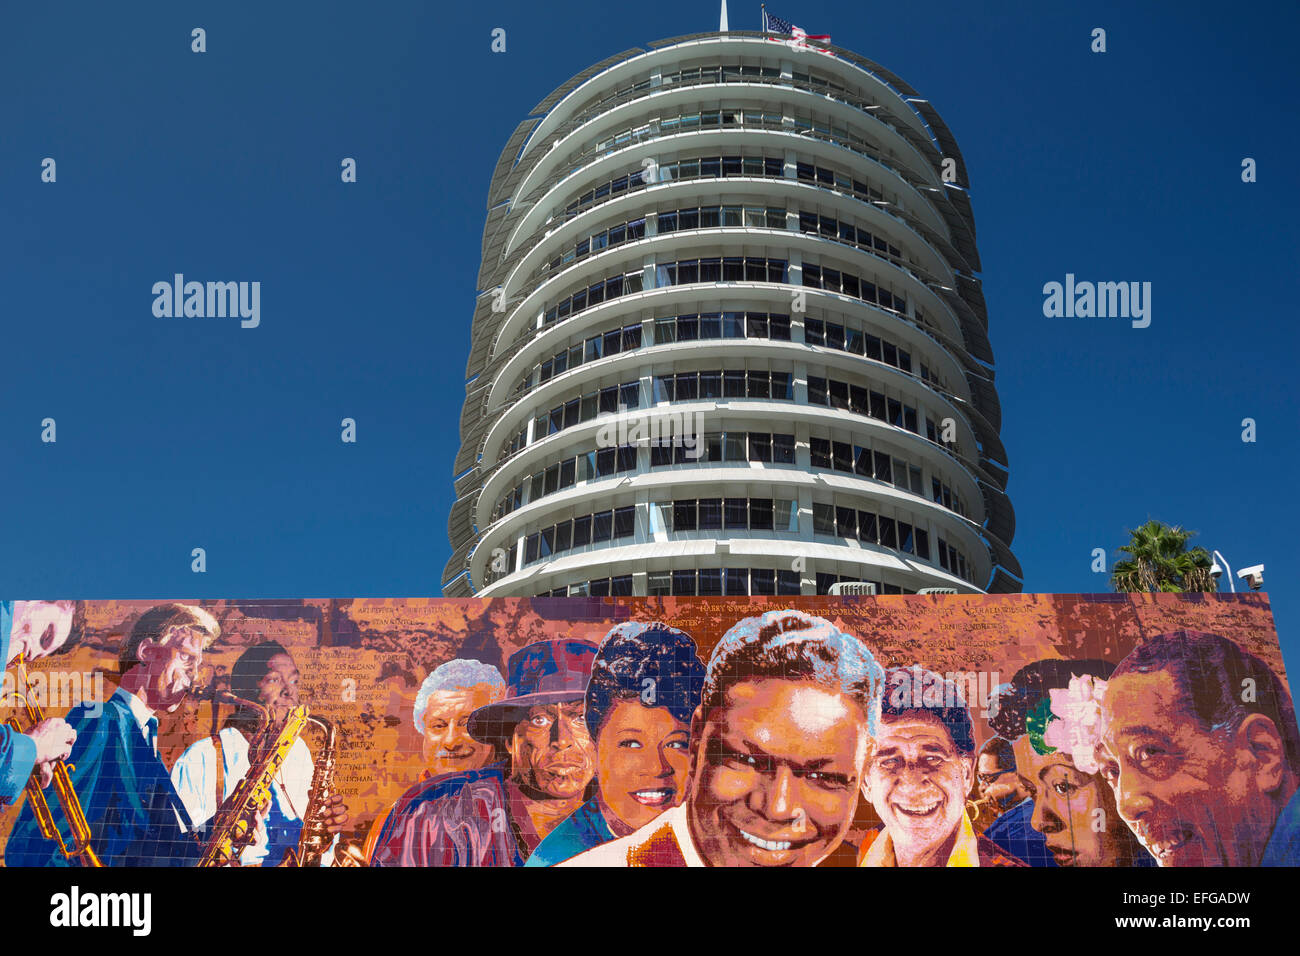 RICHARD WYATT HOLLYWOOD JAZZ MURAL CAPITOL RECORDS BUILDING TOWER VINE STREET HOLLYWOOD LOS ANGELES CALIFORNIA - Stock Image